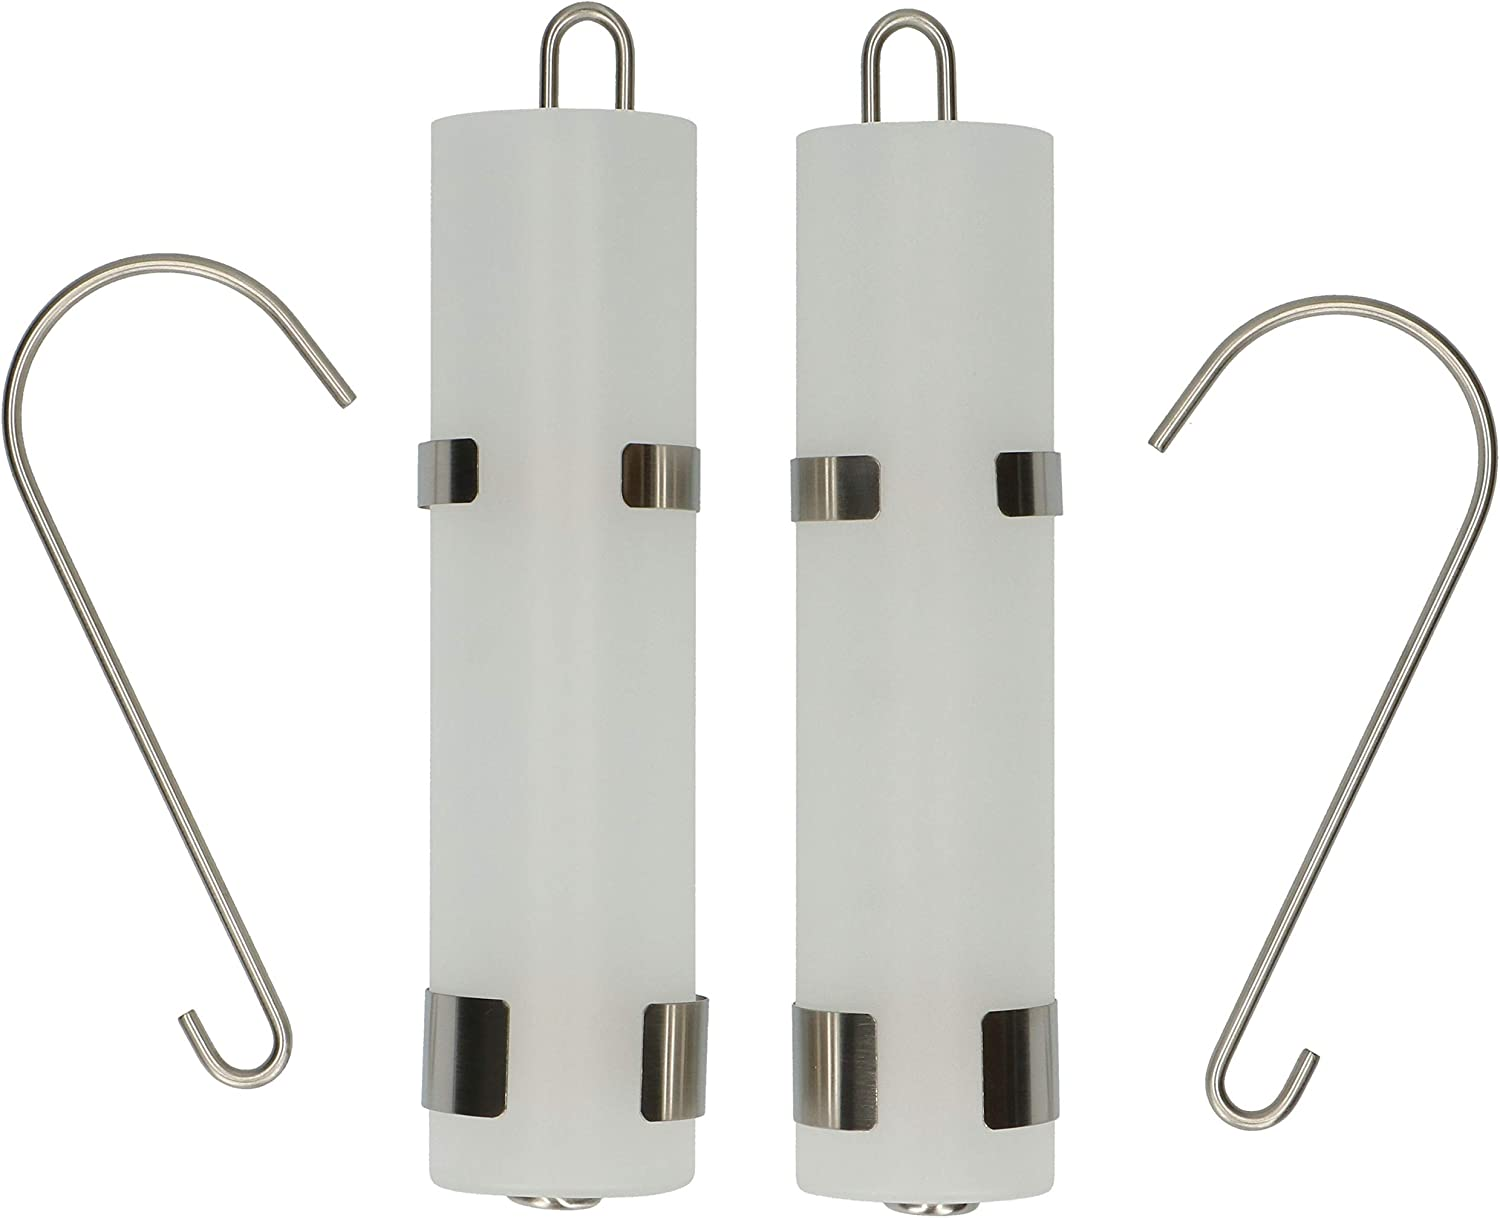 URBNLIVING Set Of 4 Glass Hanging Radiator Humidifier